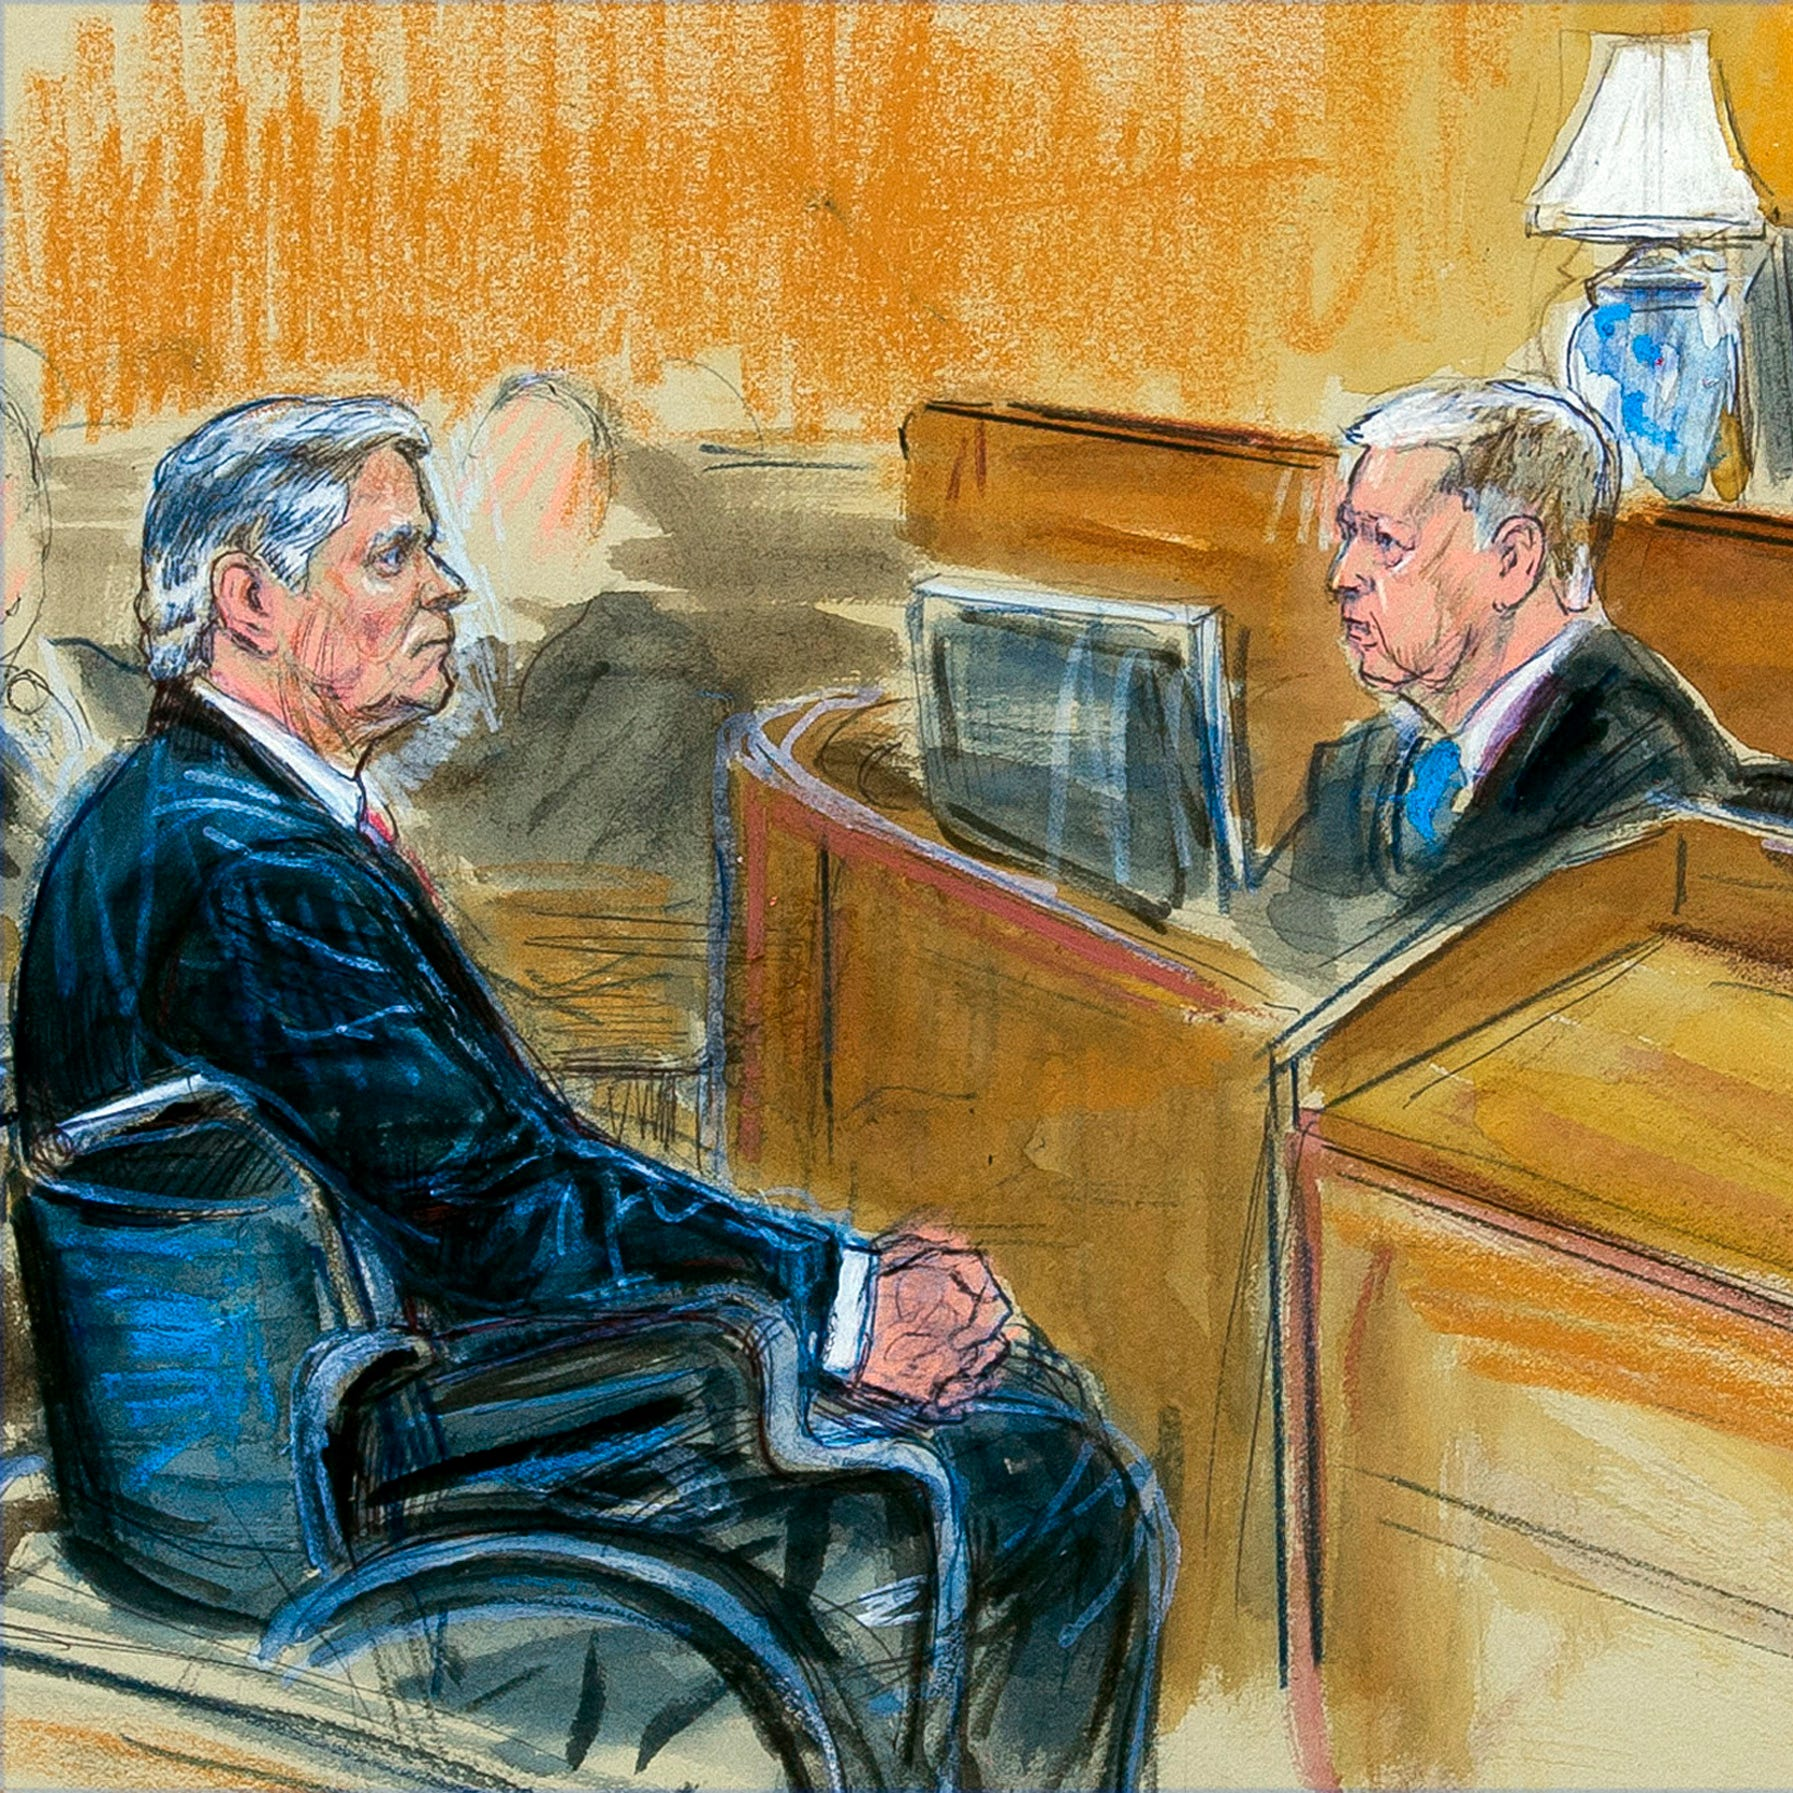 Paul Manafort gets 7 years in prison, then faces fresh New York charges